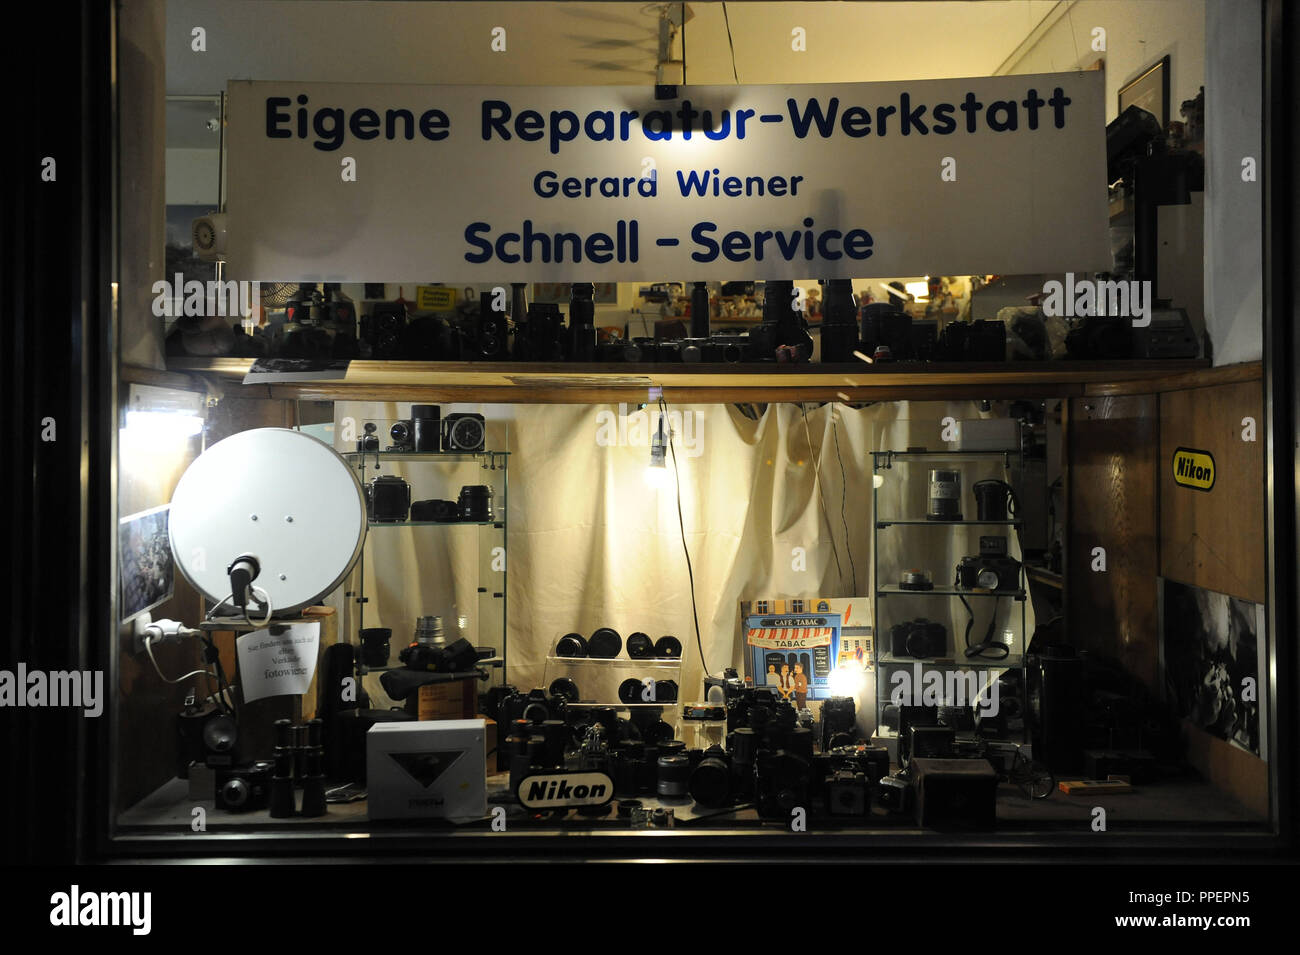 Precision engineer Gerard Wieners small business in the Landwehrstraße in which he repairs and solds analog cameras, Munich, Germany - Stock Image